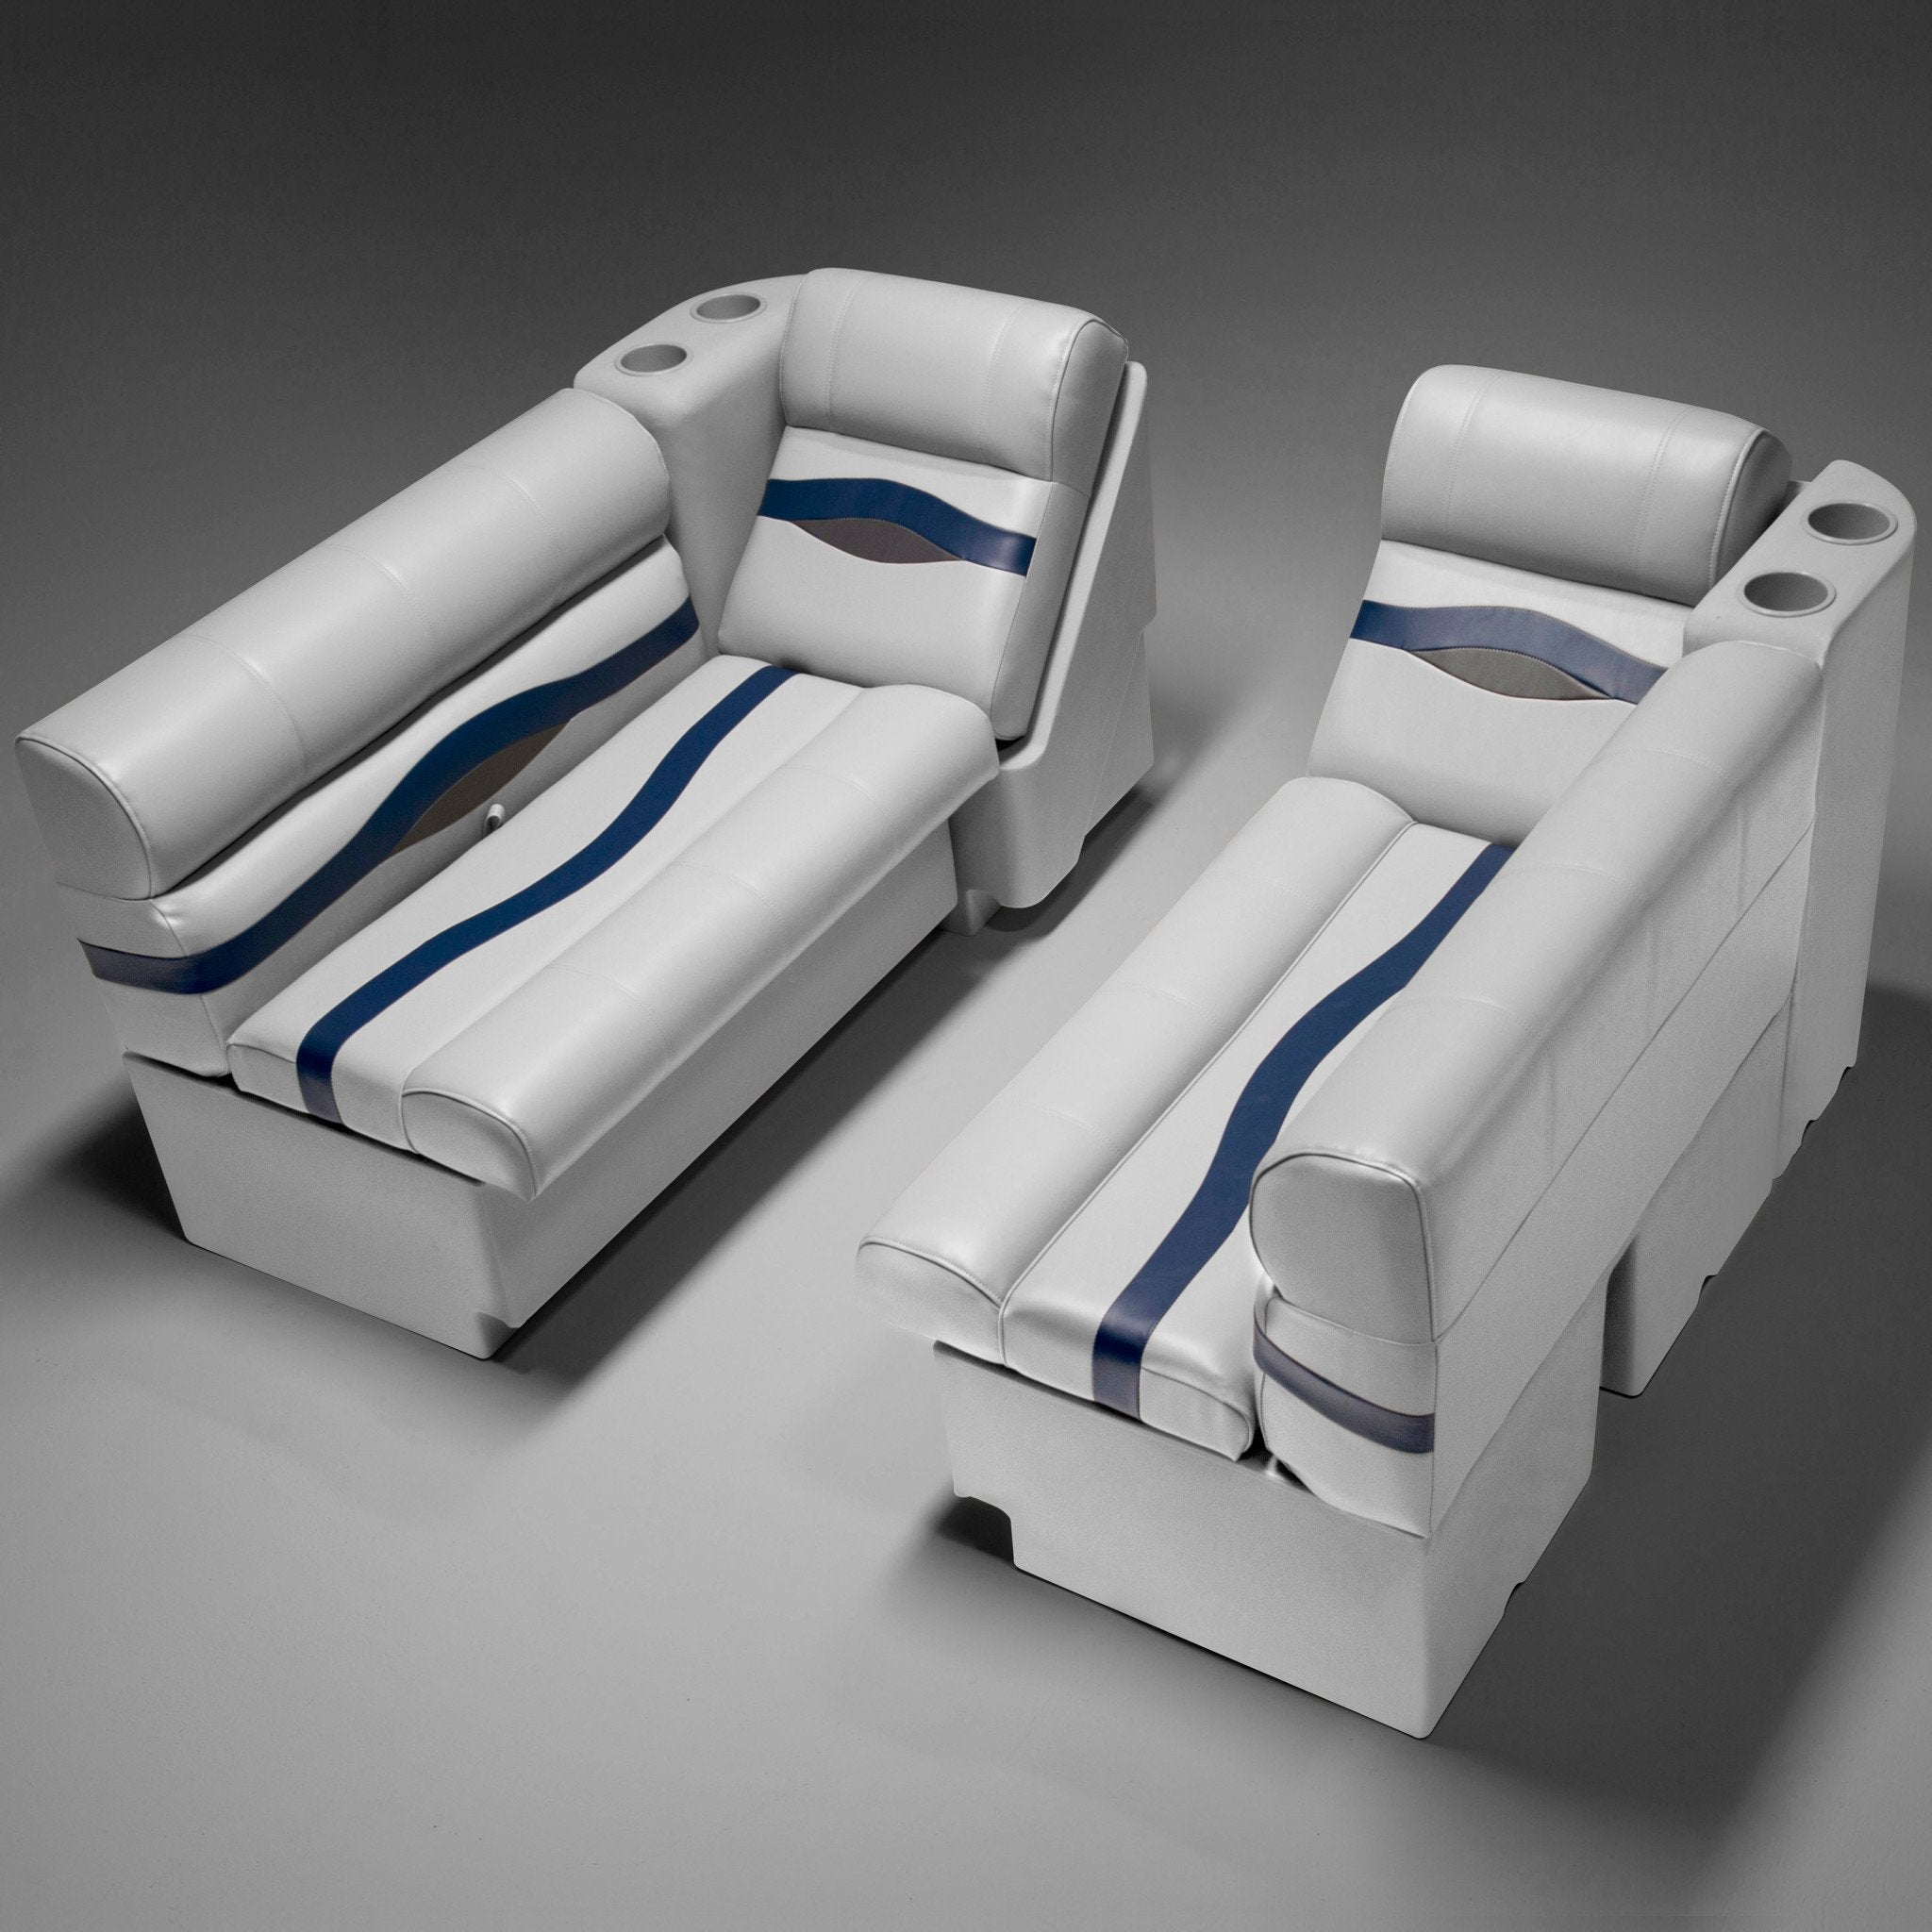 Houseboat Furniture And Accessories: Pontoon Boat Seats (PFG55B)